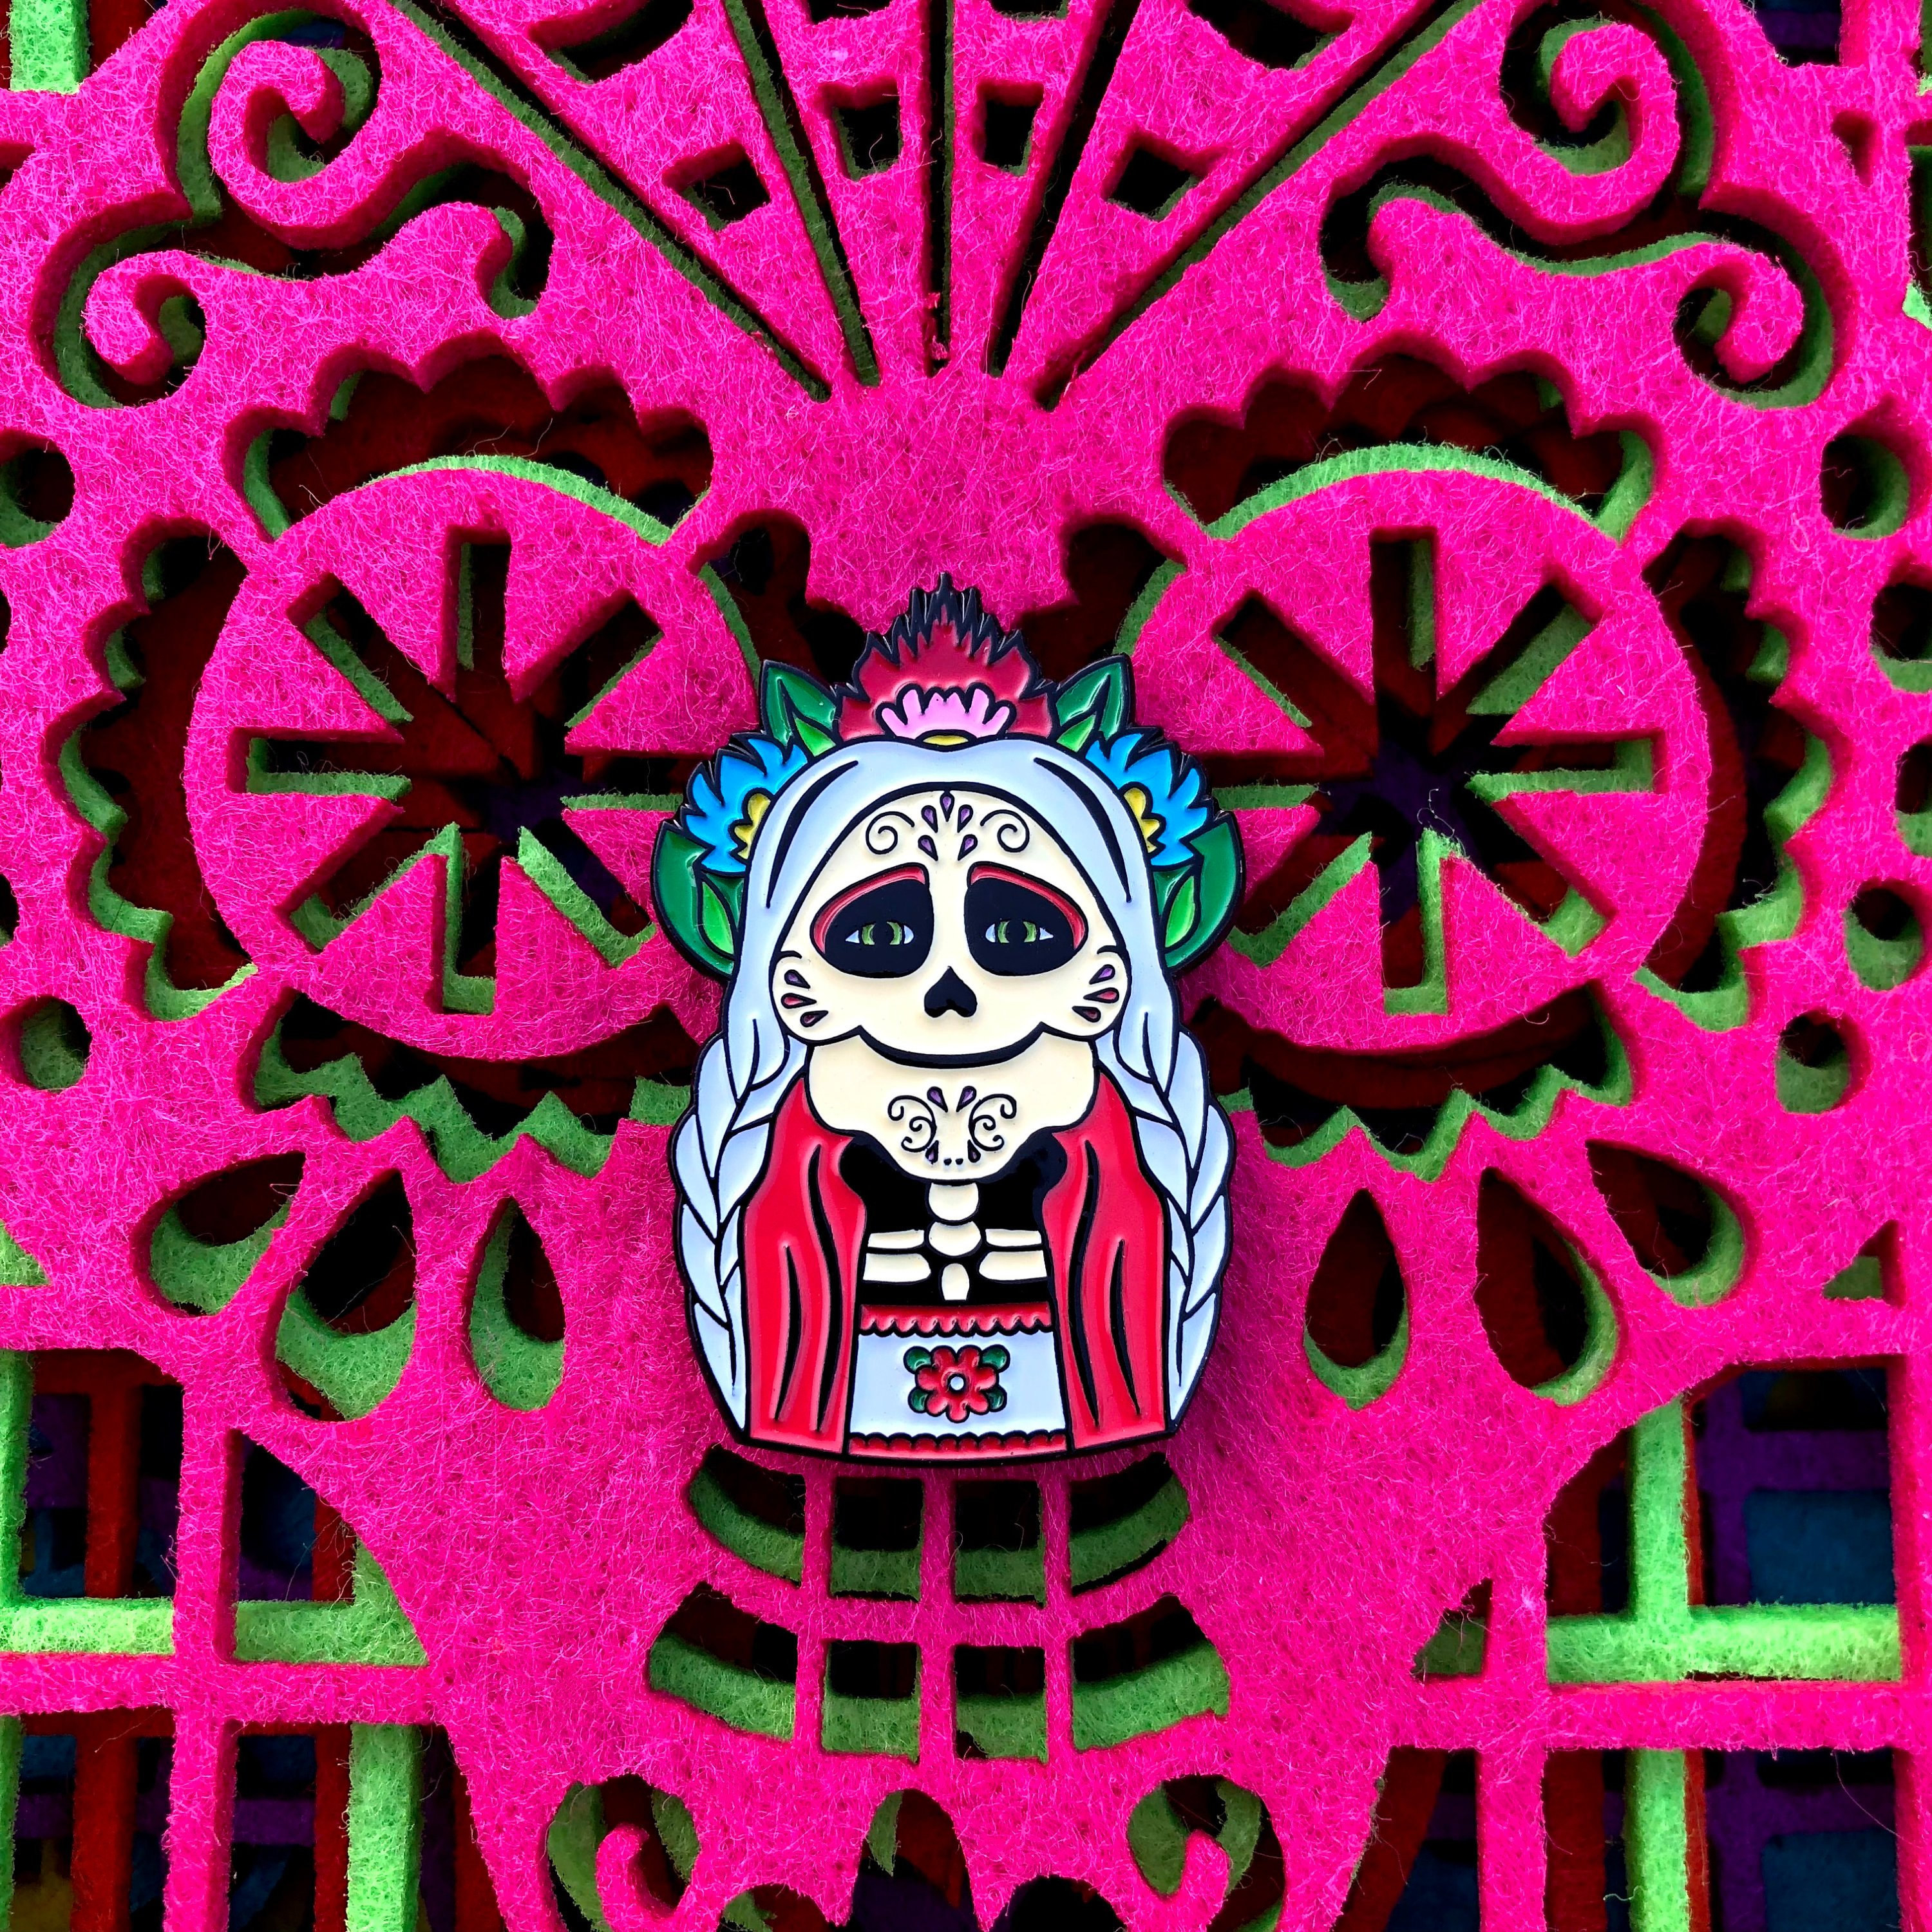 the enamel pin of mama coco as a skeleton